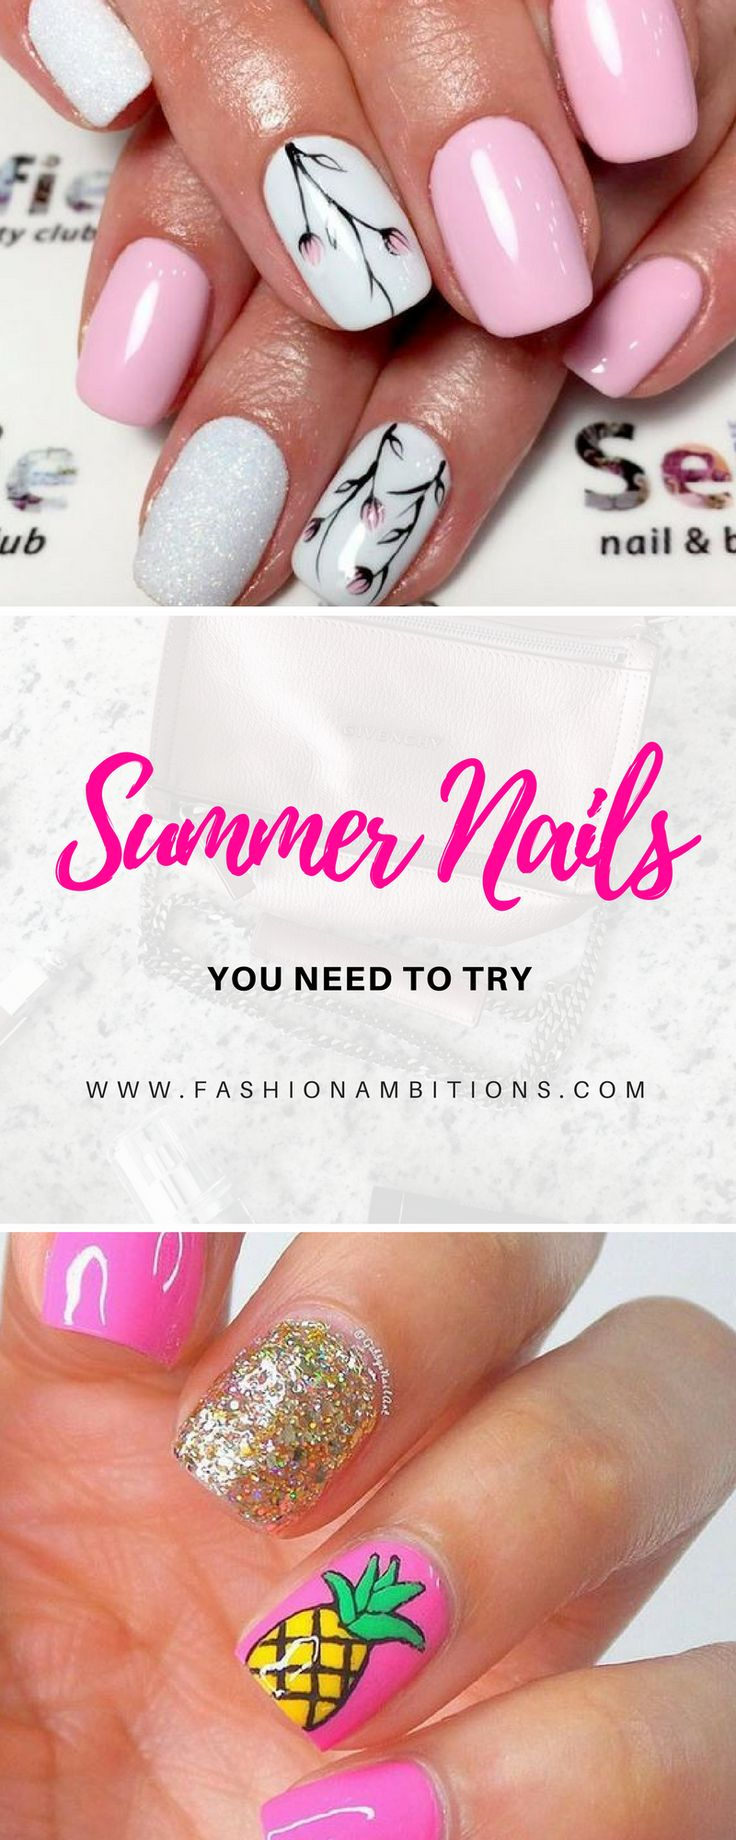 481 best nails images on pinterest | best nails, elegant nails and